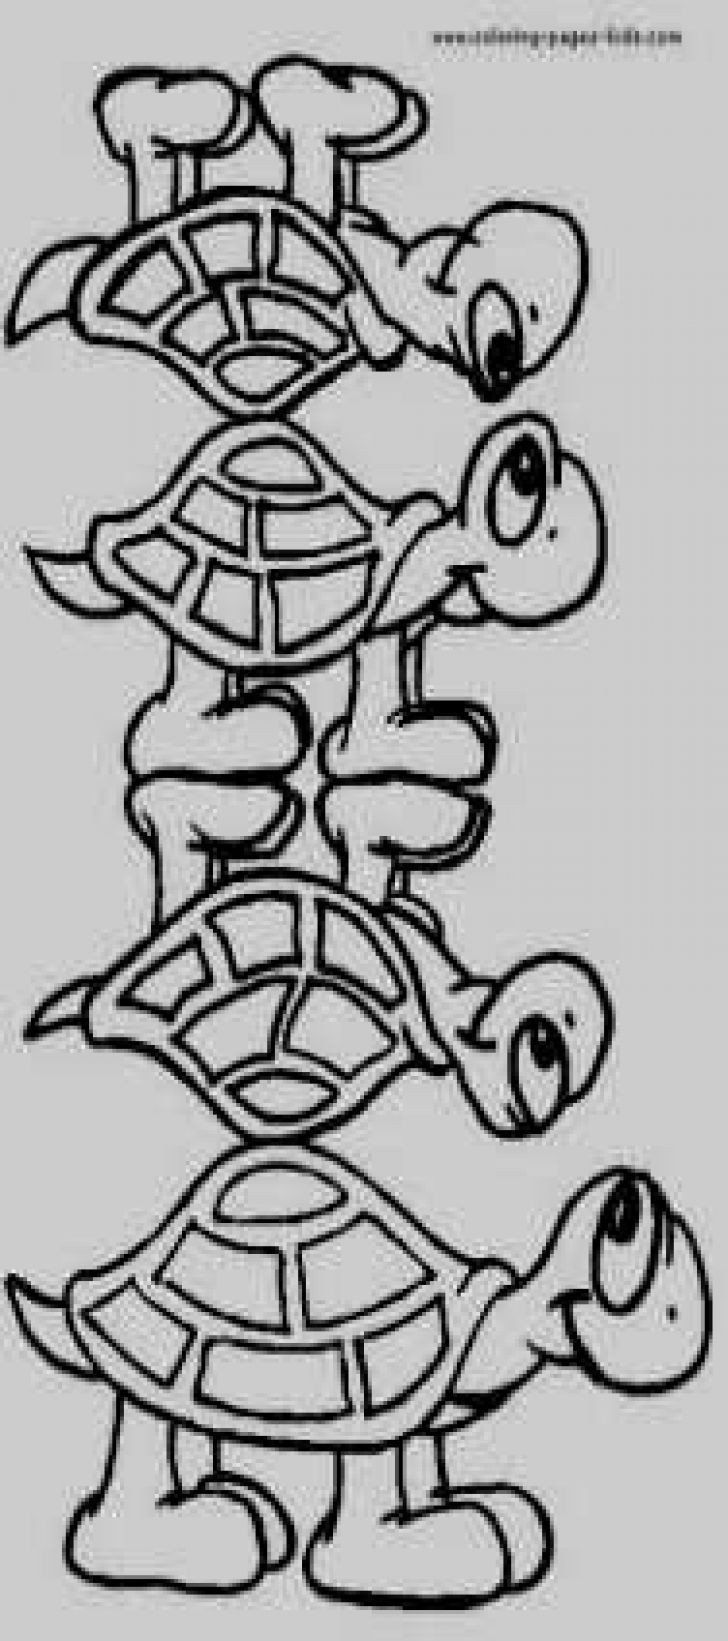 Sea Turtle Coloring Page Elegant 15 Fresh Turtle Coloring Pages Kanta Turtle Coloring Pages Coloring Pages Turtle Crafts